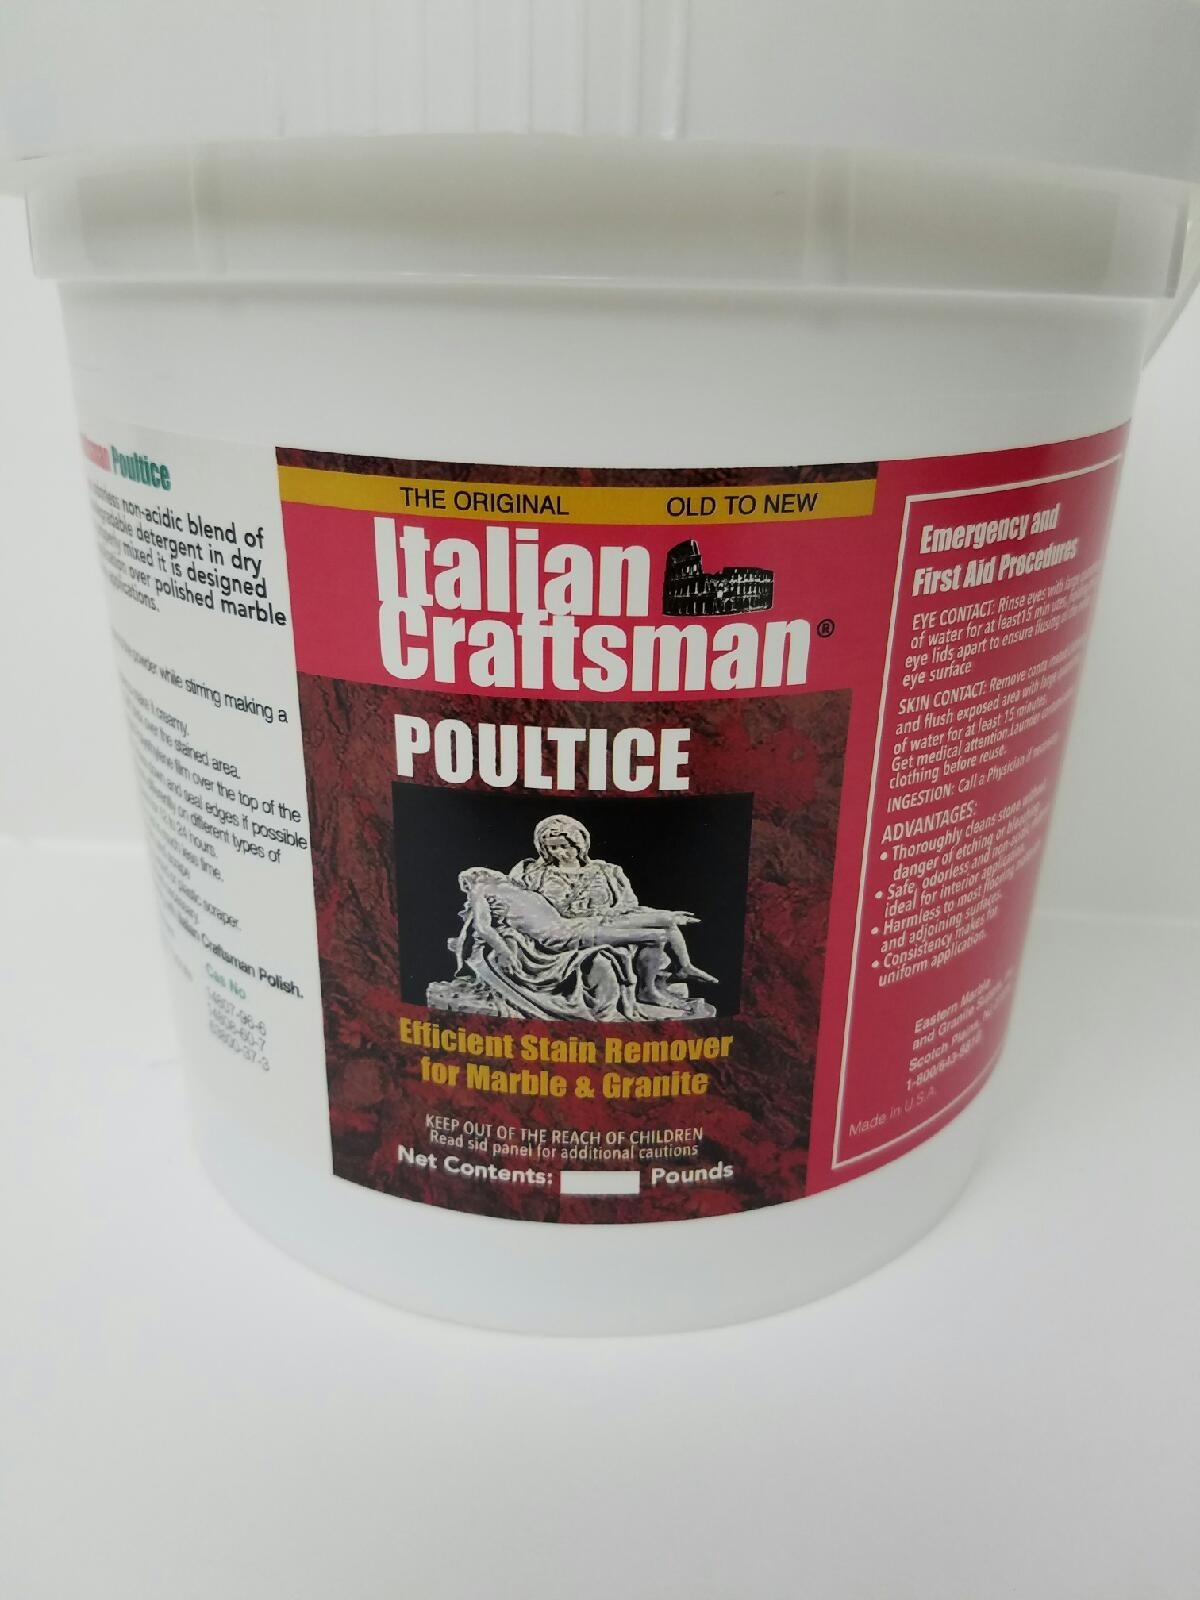 ITALIAN CRAFTSMAN® MARBLE POULTICE